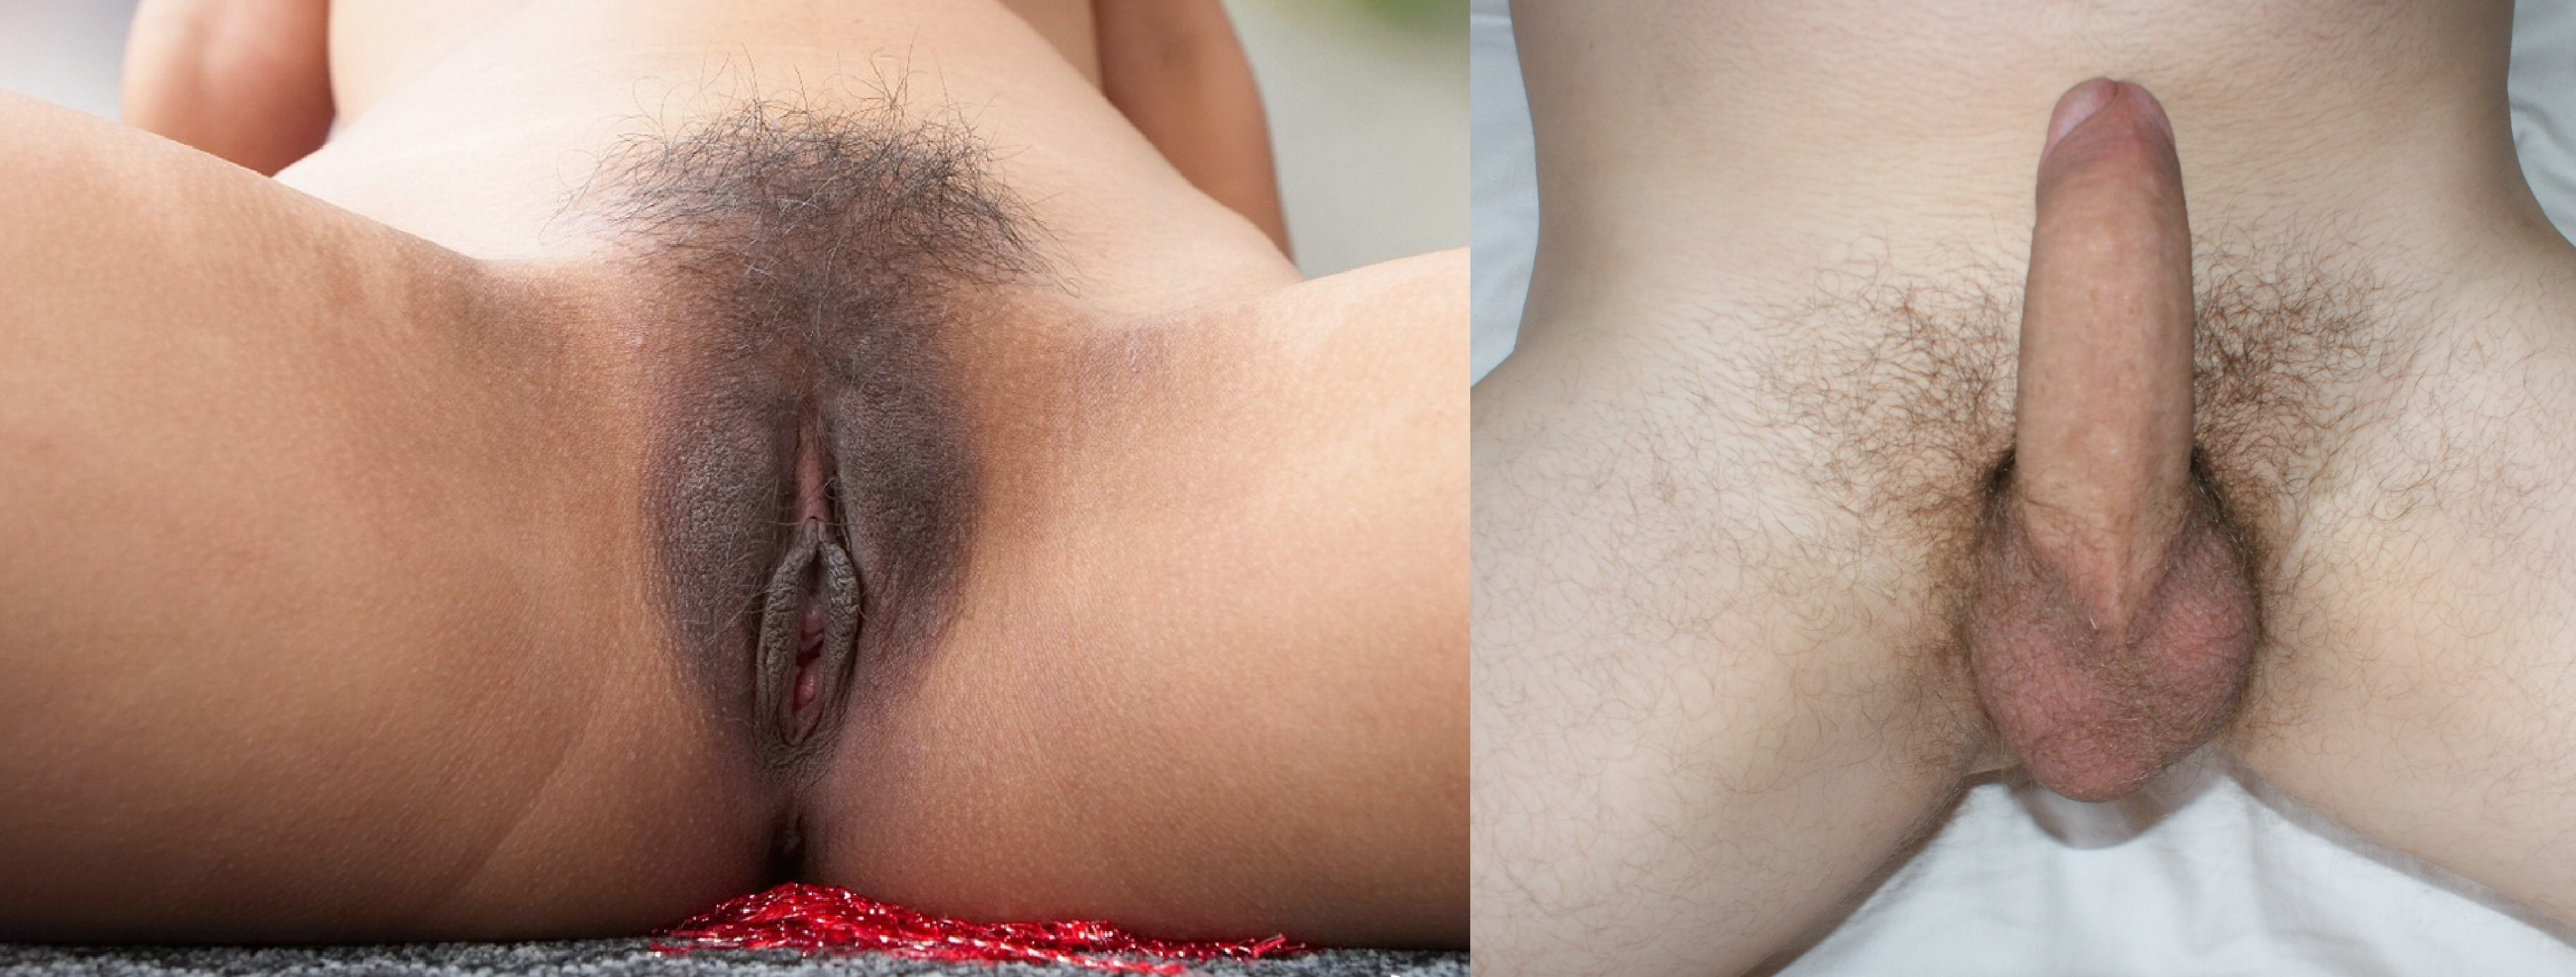 image Male only pubic hair with penis free